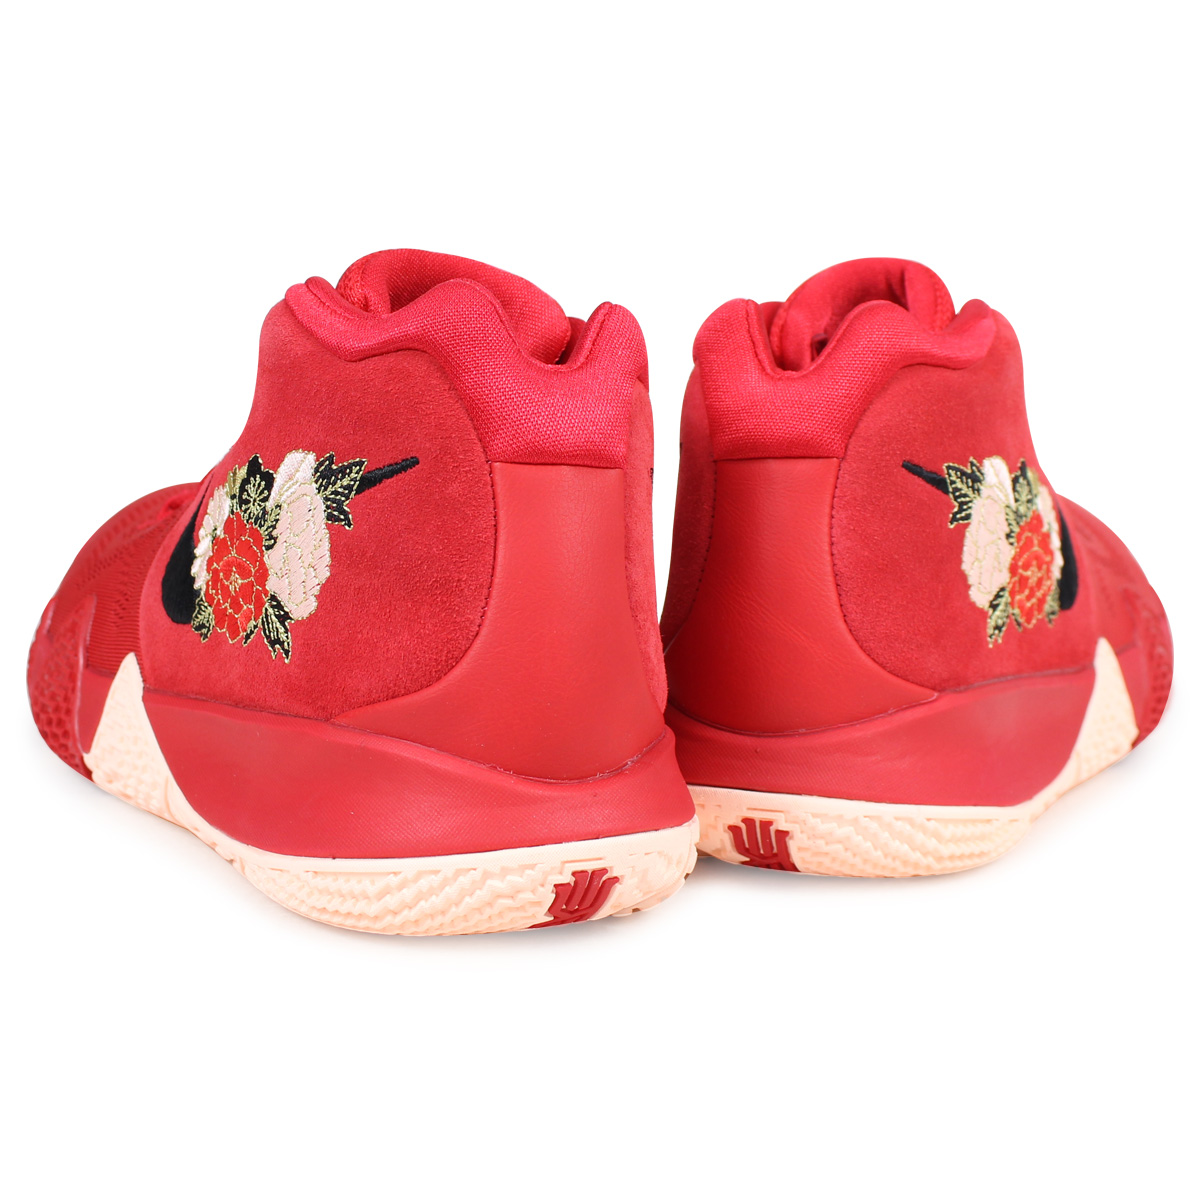 separation shoes a4f10 42450 NIKE KYRIE 4 EP CNY Nike chi Lee 4 sneakers men red 943,807-600 [183]